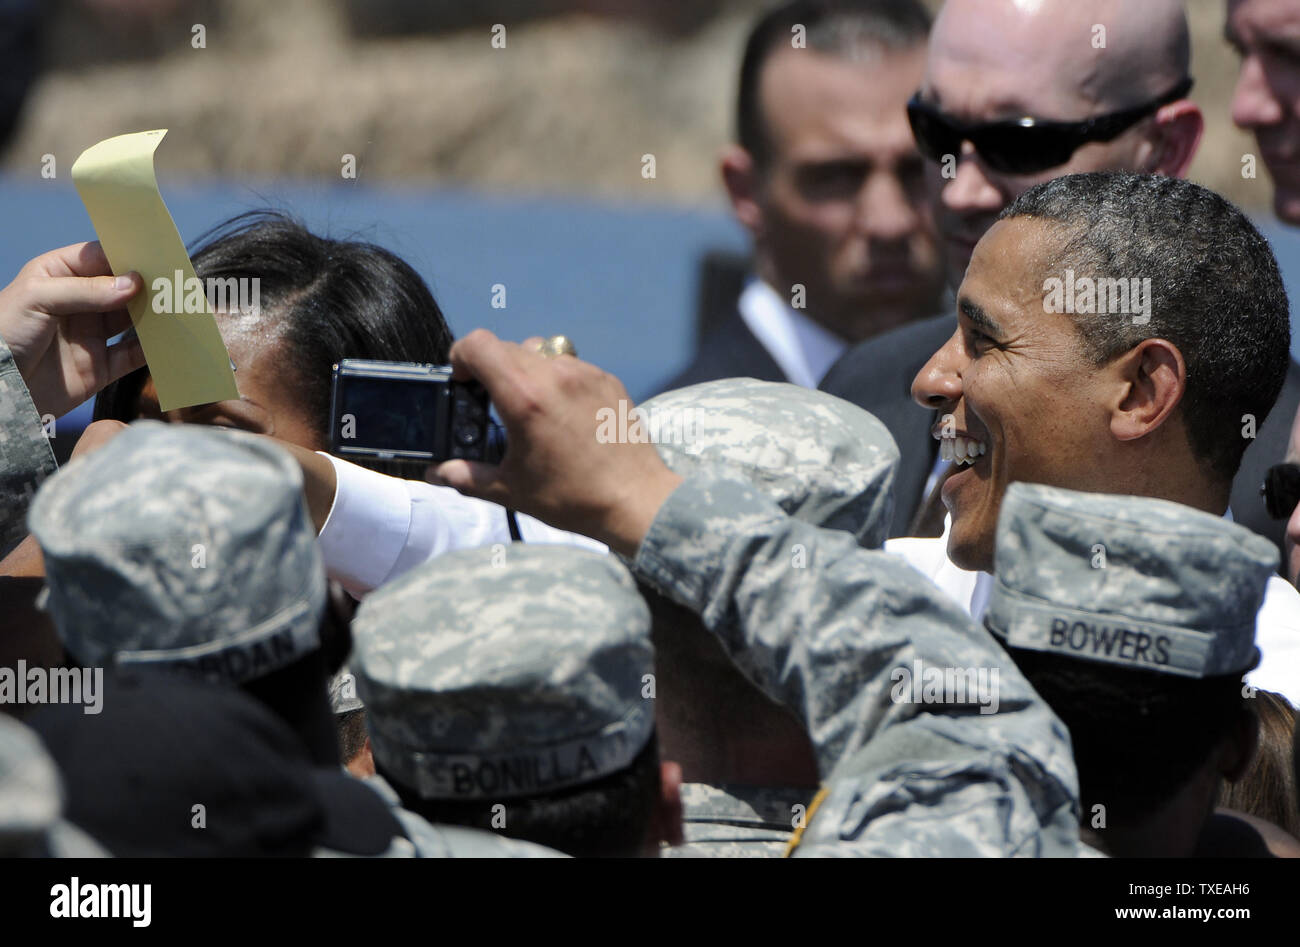 President Barack Obama meets with troops at the headquarters for the Army's 3rd Infantry Division in Fort Stewart, Georgia after a GI Bill signing ceremony on April 27, 2012.   UPI/David Tulis - Stock Image